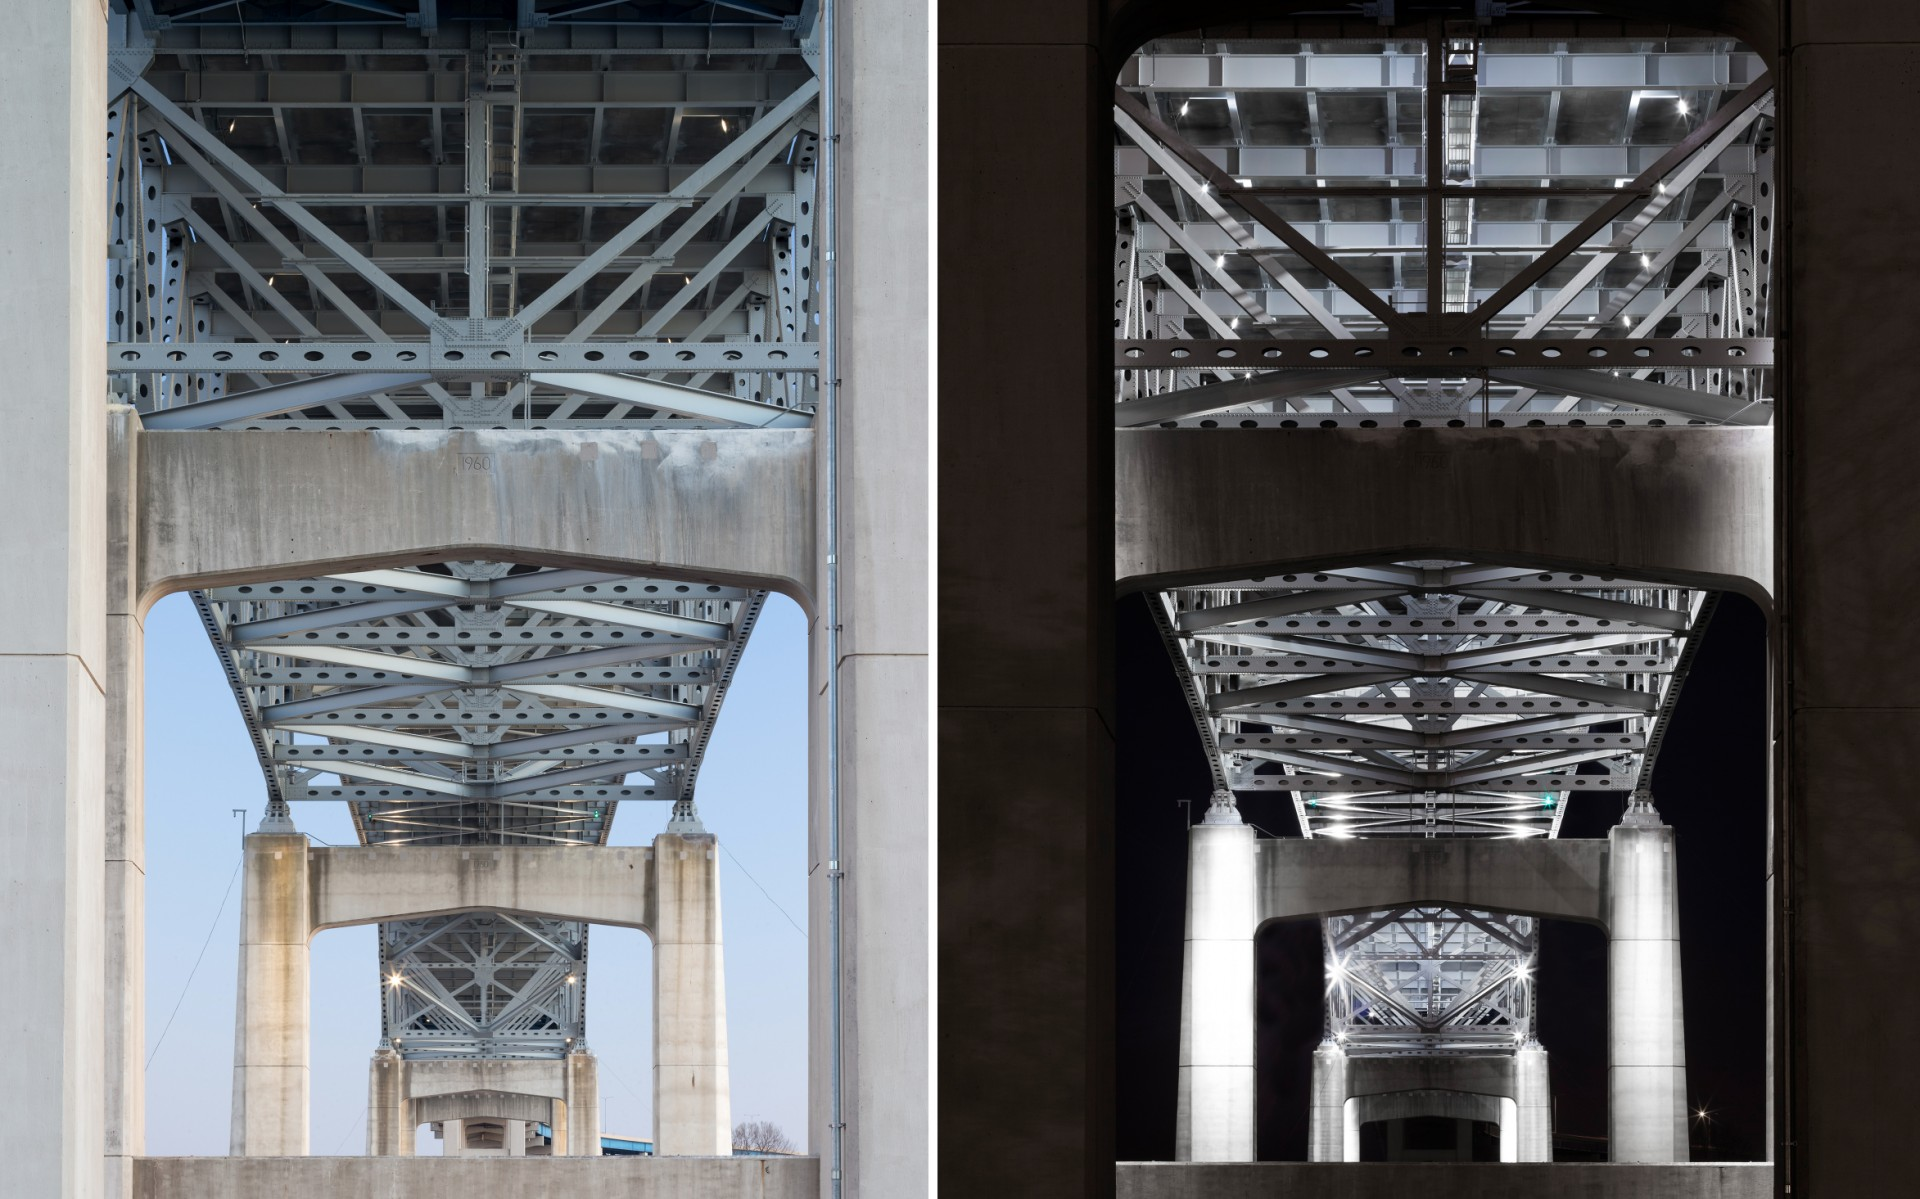 Short Elliott Hendrickson, Inc. (SEH) carefully determined the aiming angles of the luminaires to highlight the structural architecture of the bridge.